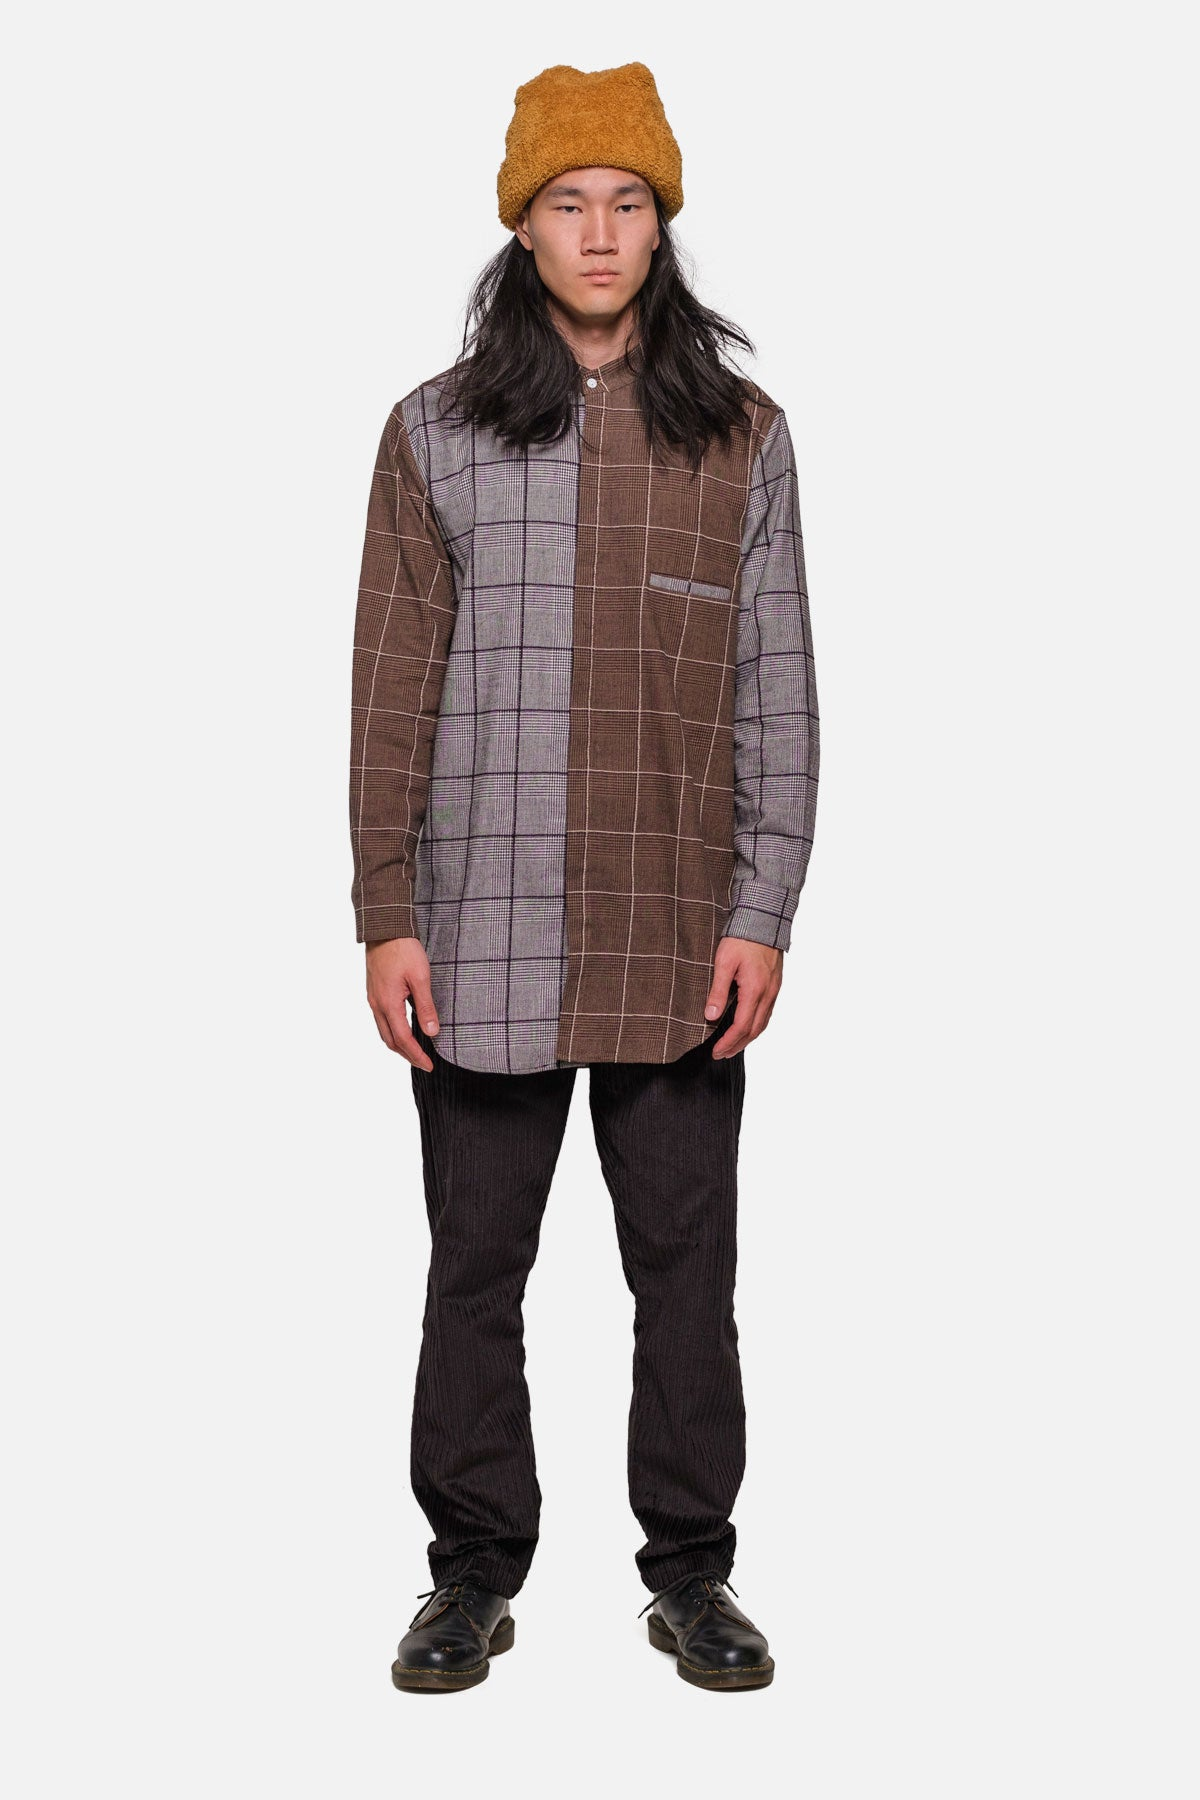 SHOREDITCH TUNIC IN COFFEE-BLACK PLAID MIX - Fortune Goods